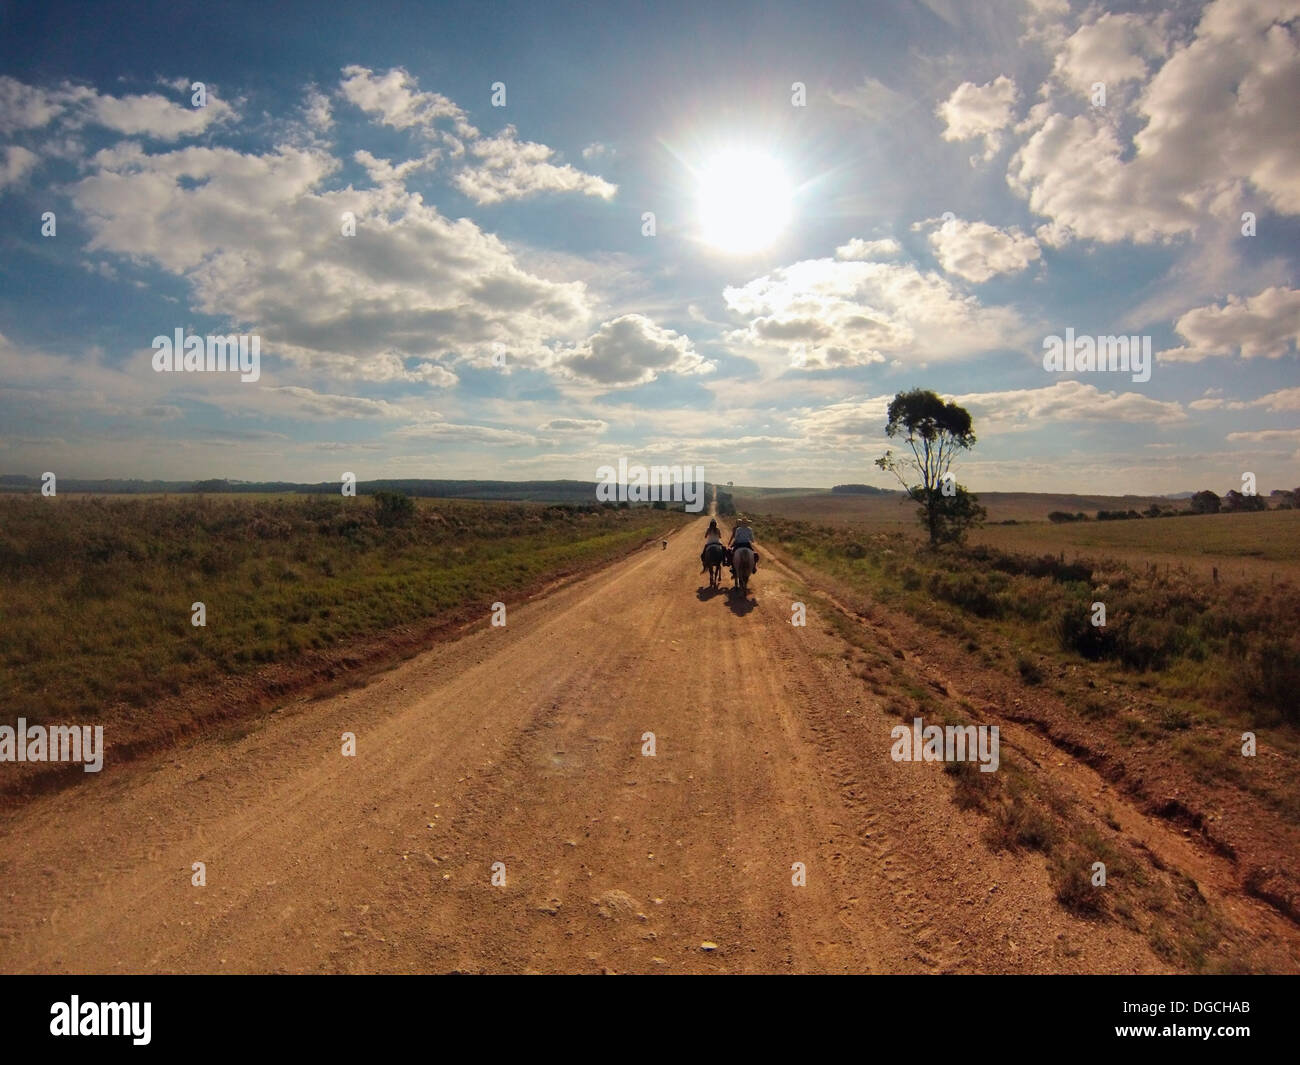 Senior man riding horse on dirt track, Uruguay - Stock Image